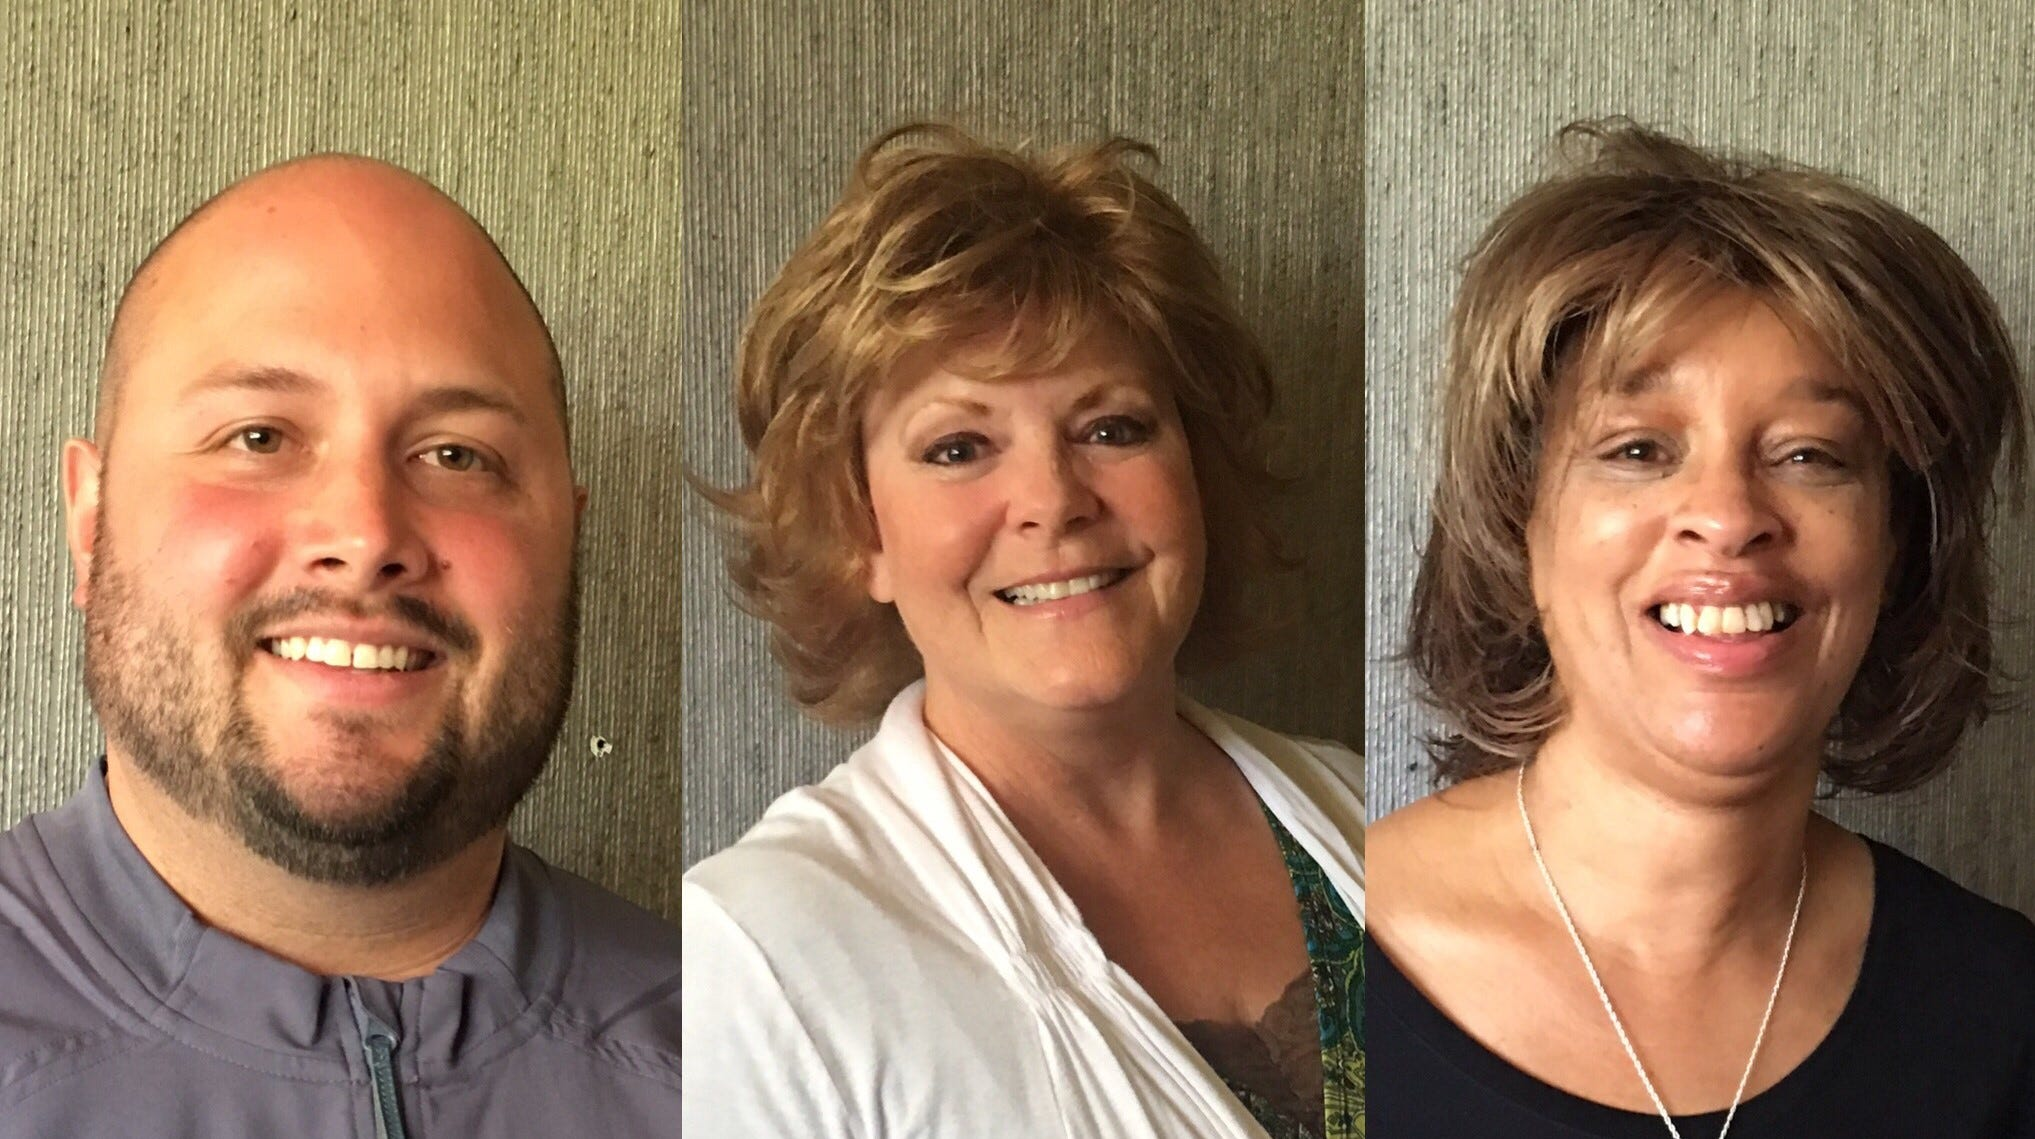 WCSD school board: Incumbent Feemster out; Caudill, Minetto and Calvert win elections